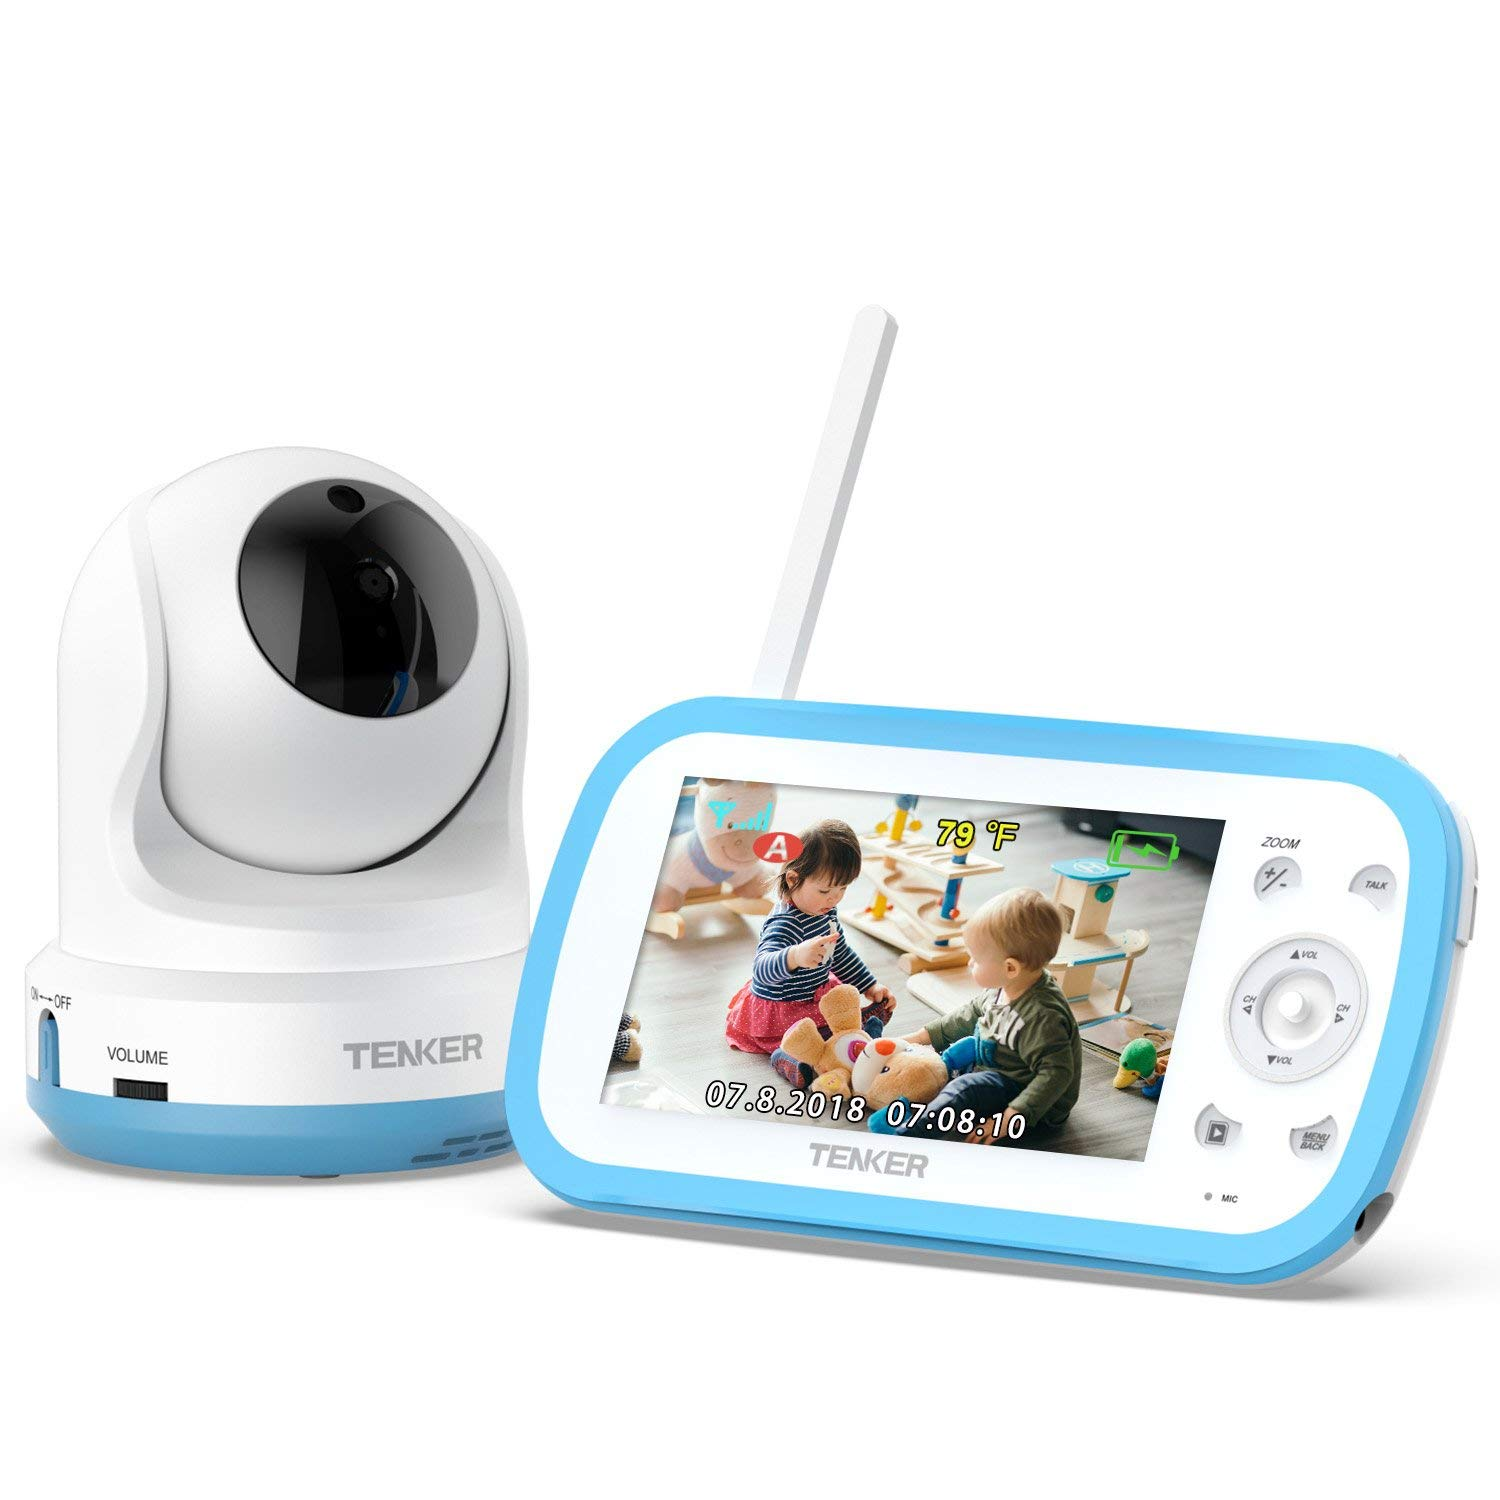 TENKER Video Baby Monitor with Camera and Audio, Baby Monitor with Night Vision, 4.3-Inch LCD Screen, 270°Pan-Tilt-Zoom, VOX, Lullaby, Two Way Talk, Temperature Detection, and Video Record (Blue-1)